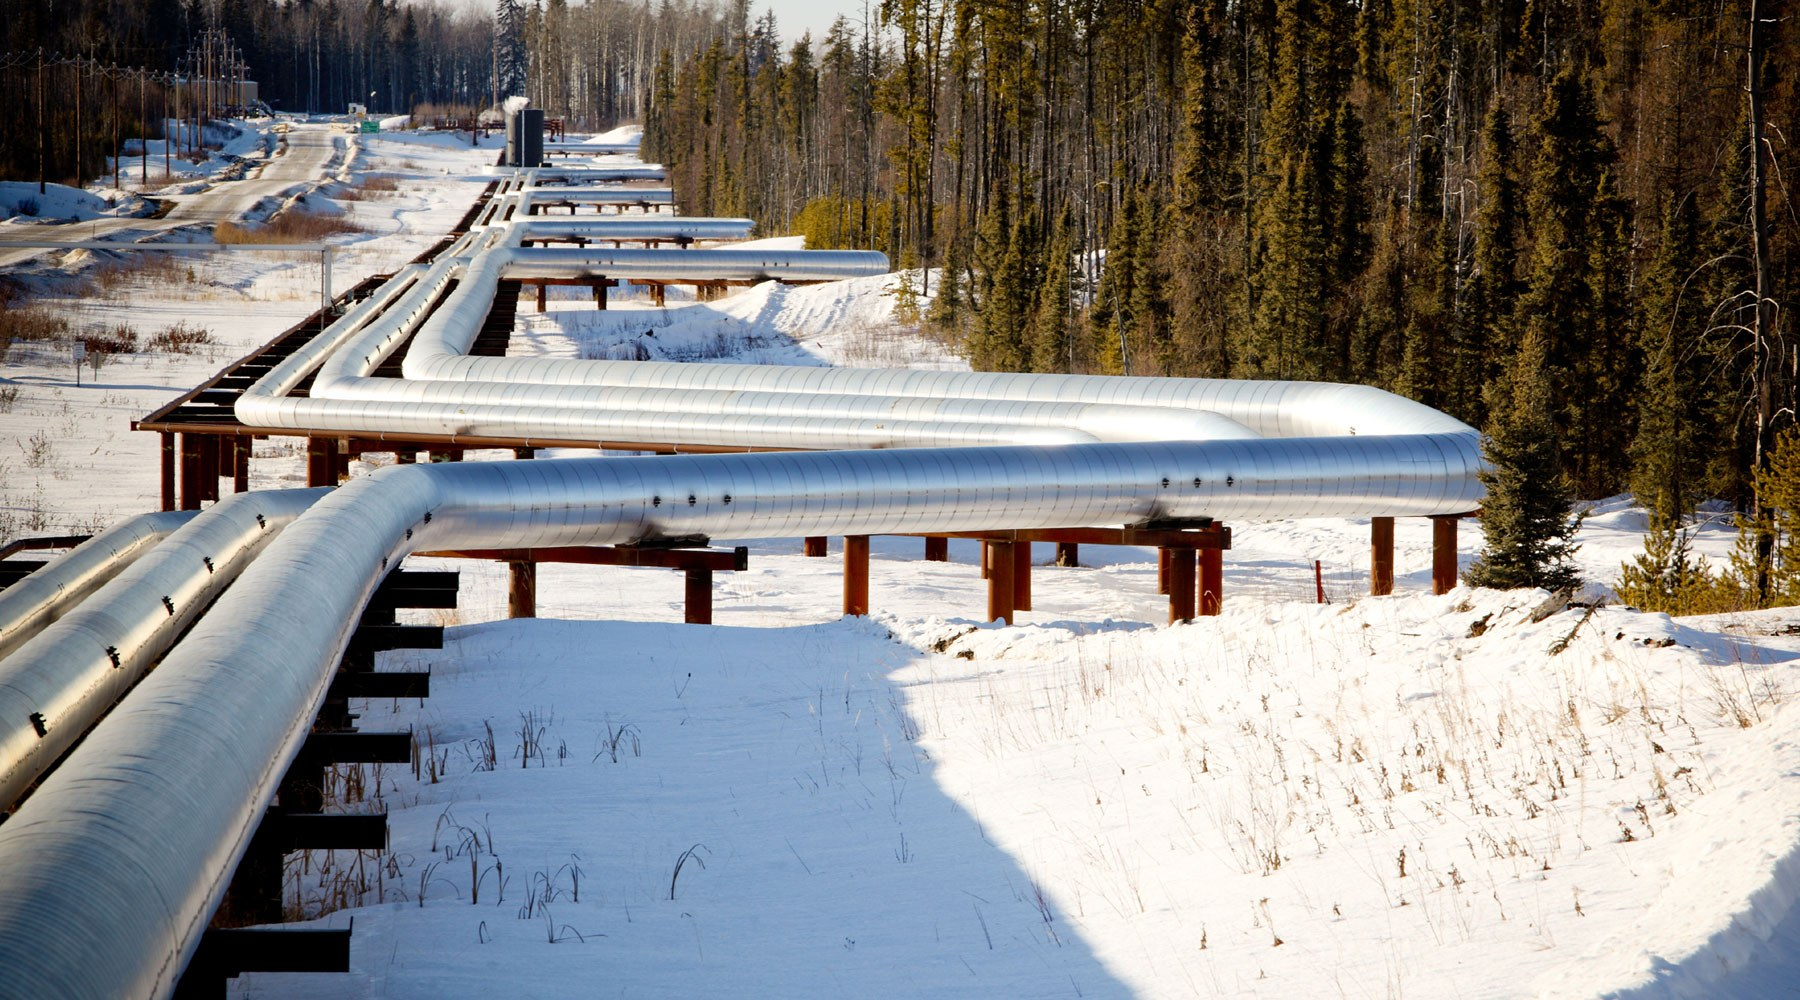 Image of silver pipeline running through a snowy forest